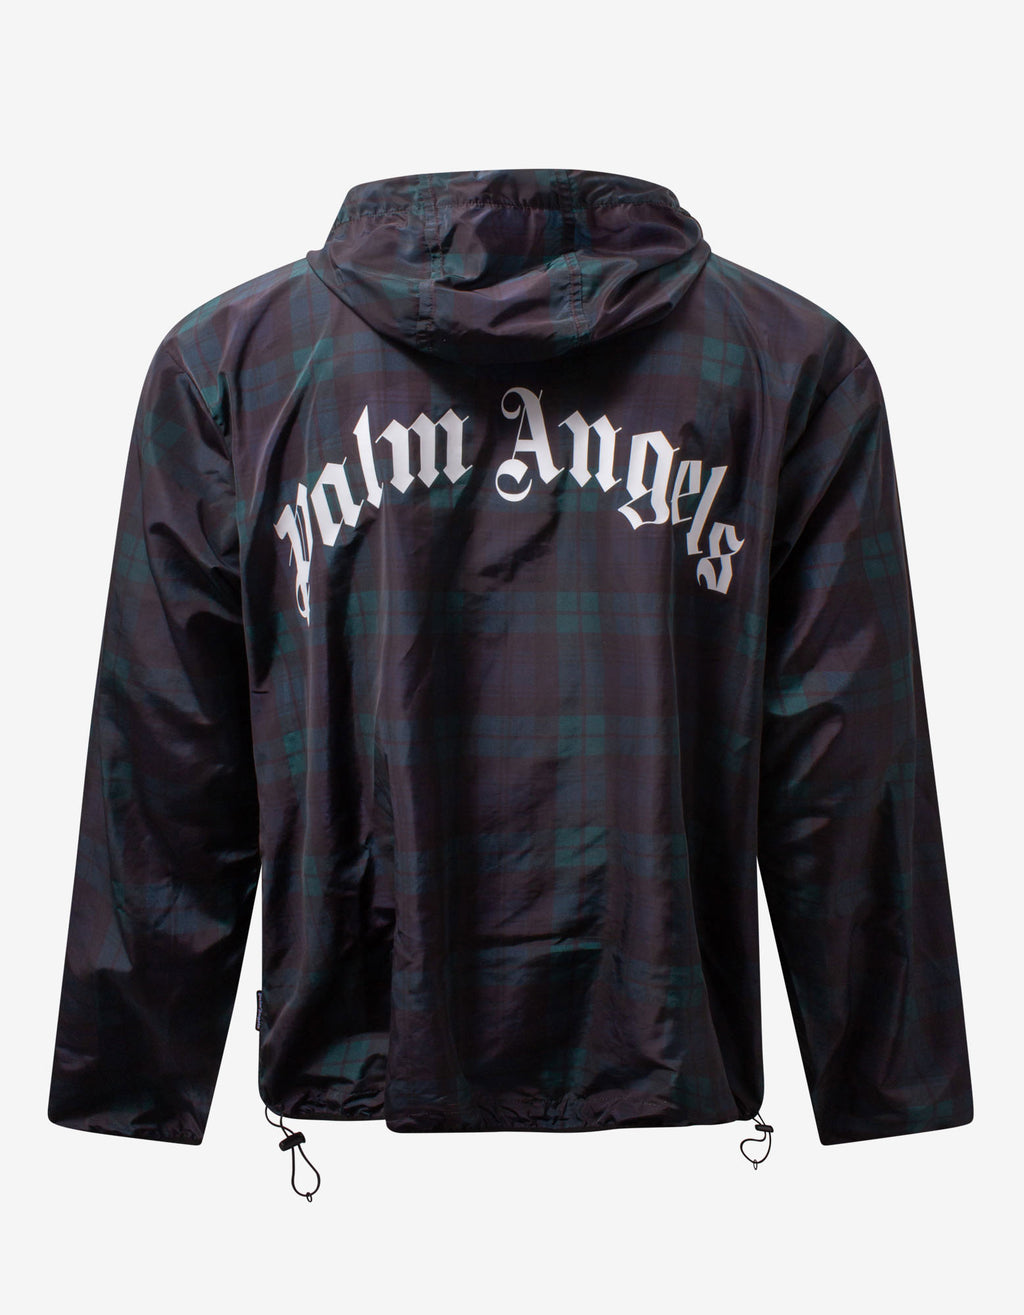 Green & Black Plaid Windbreaker